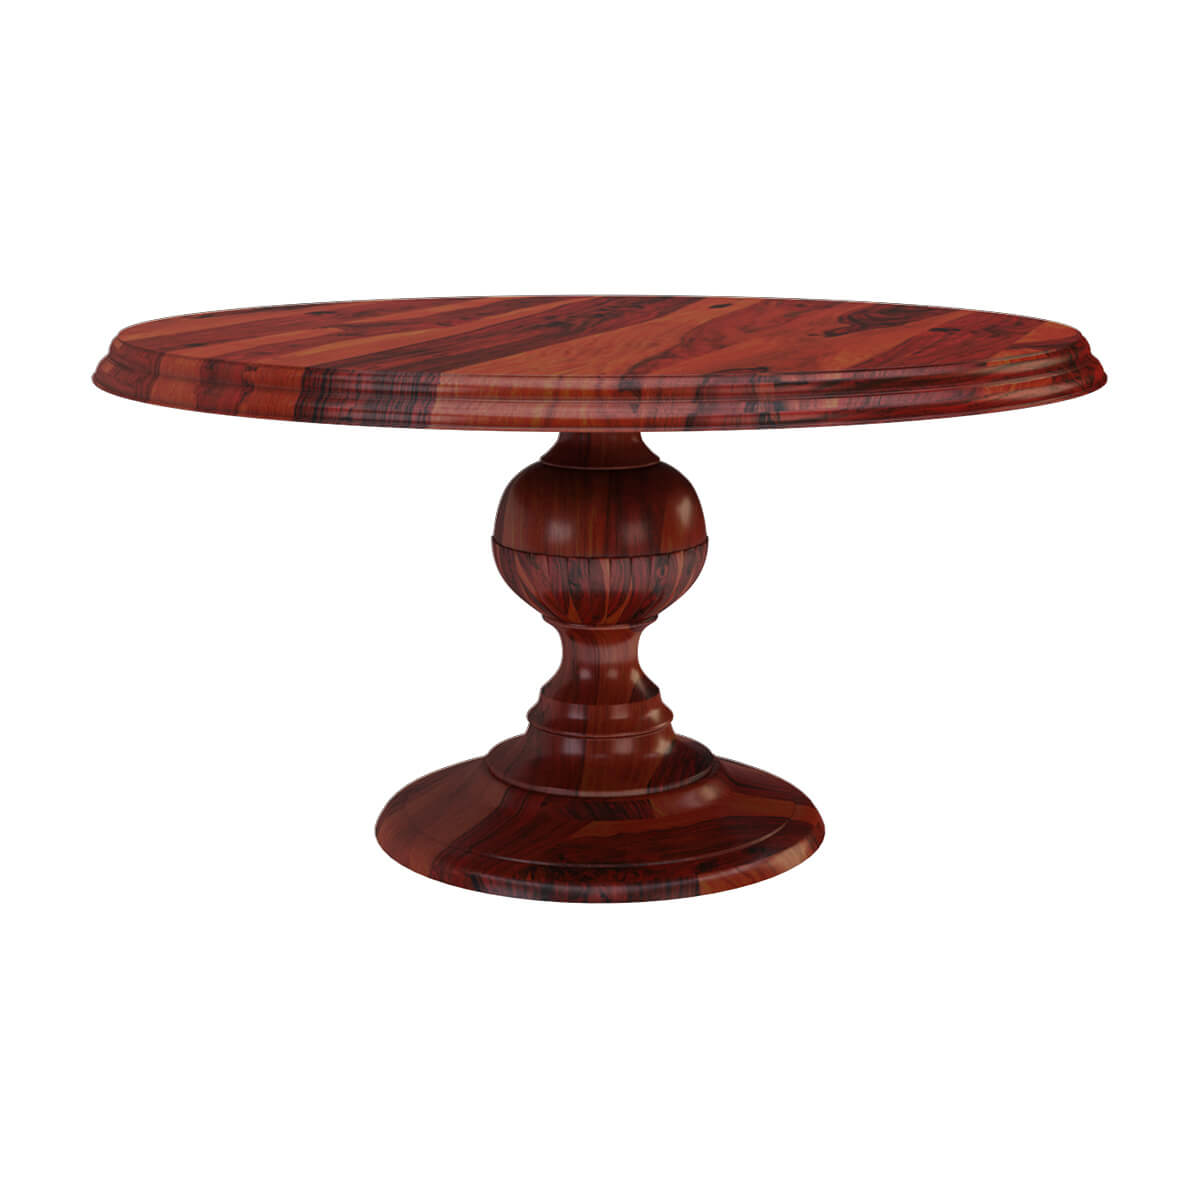 Sierra concepts 60 solid wood rustic pedestal round for Solid wood round tables dining